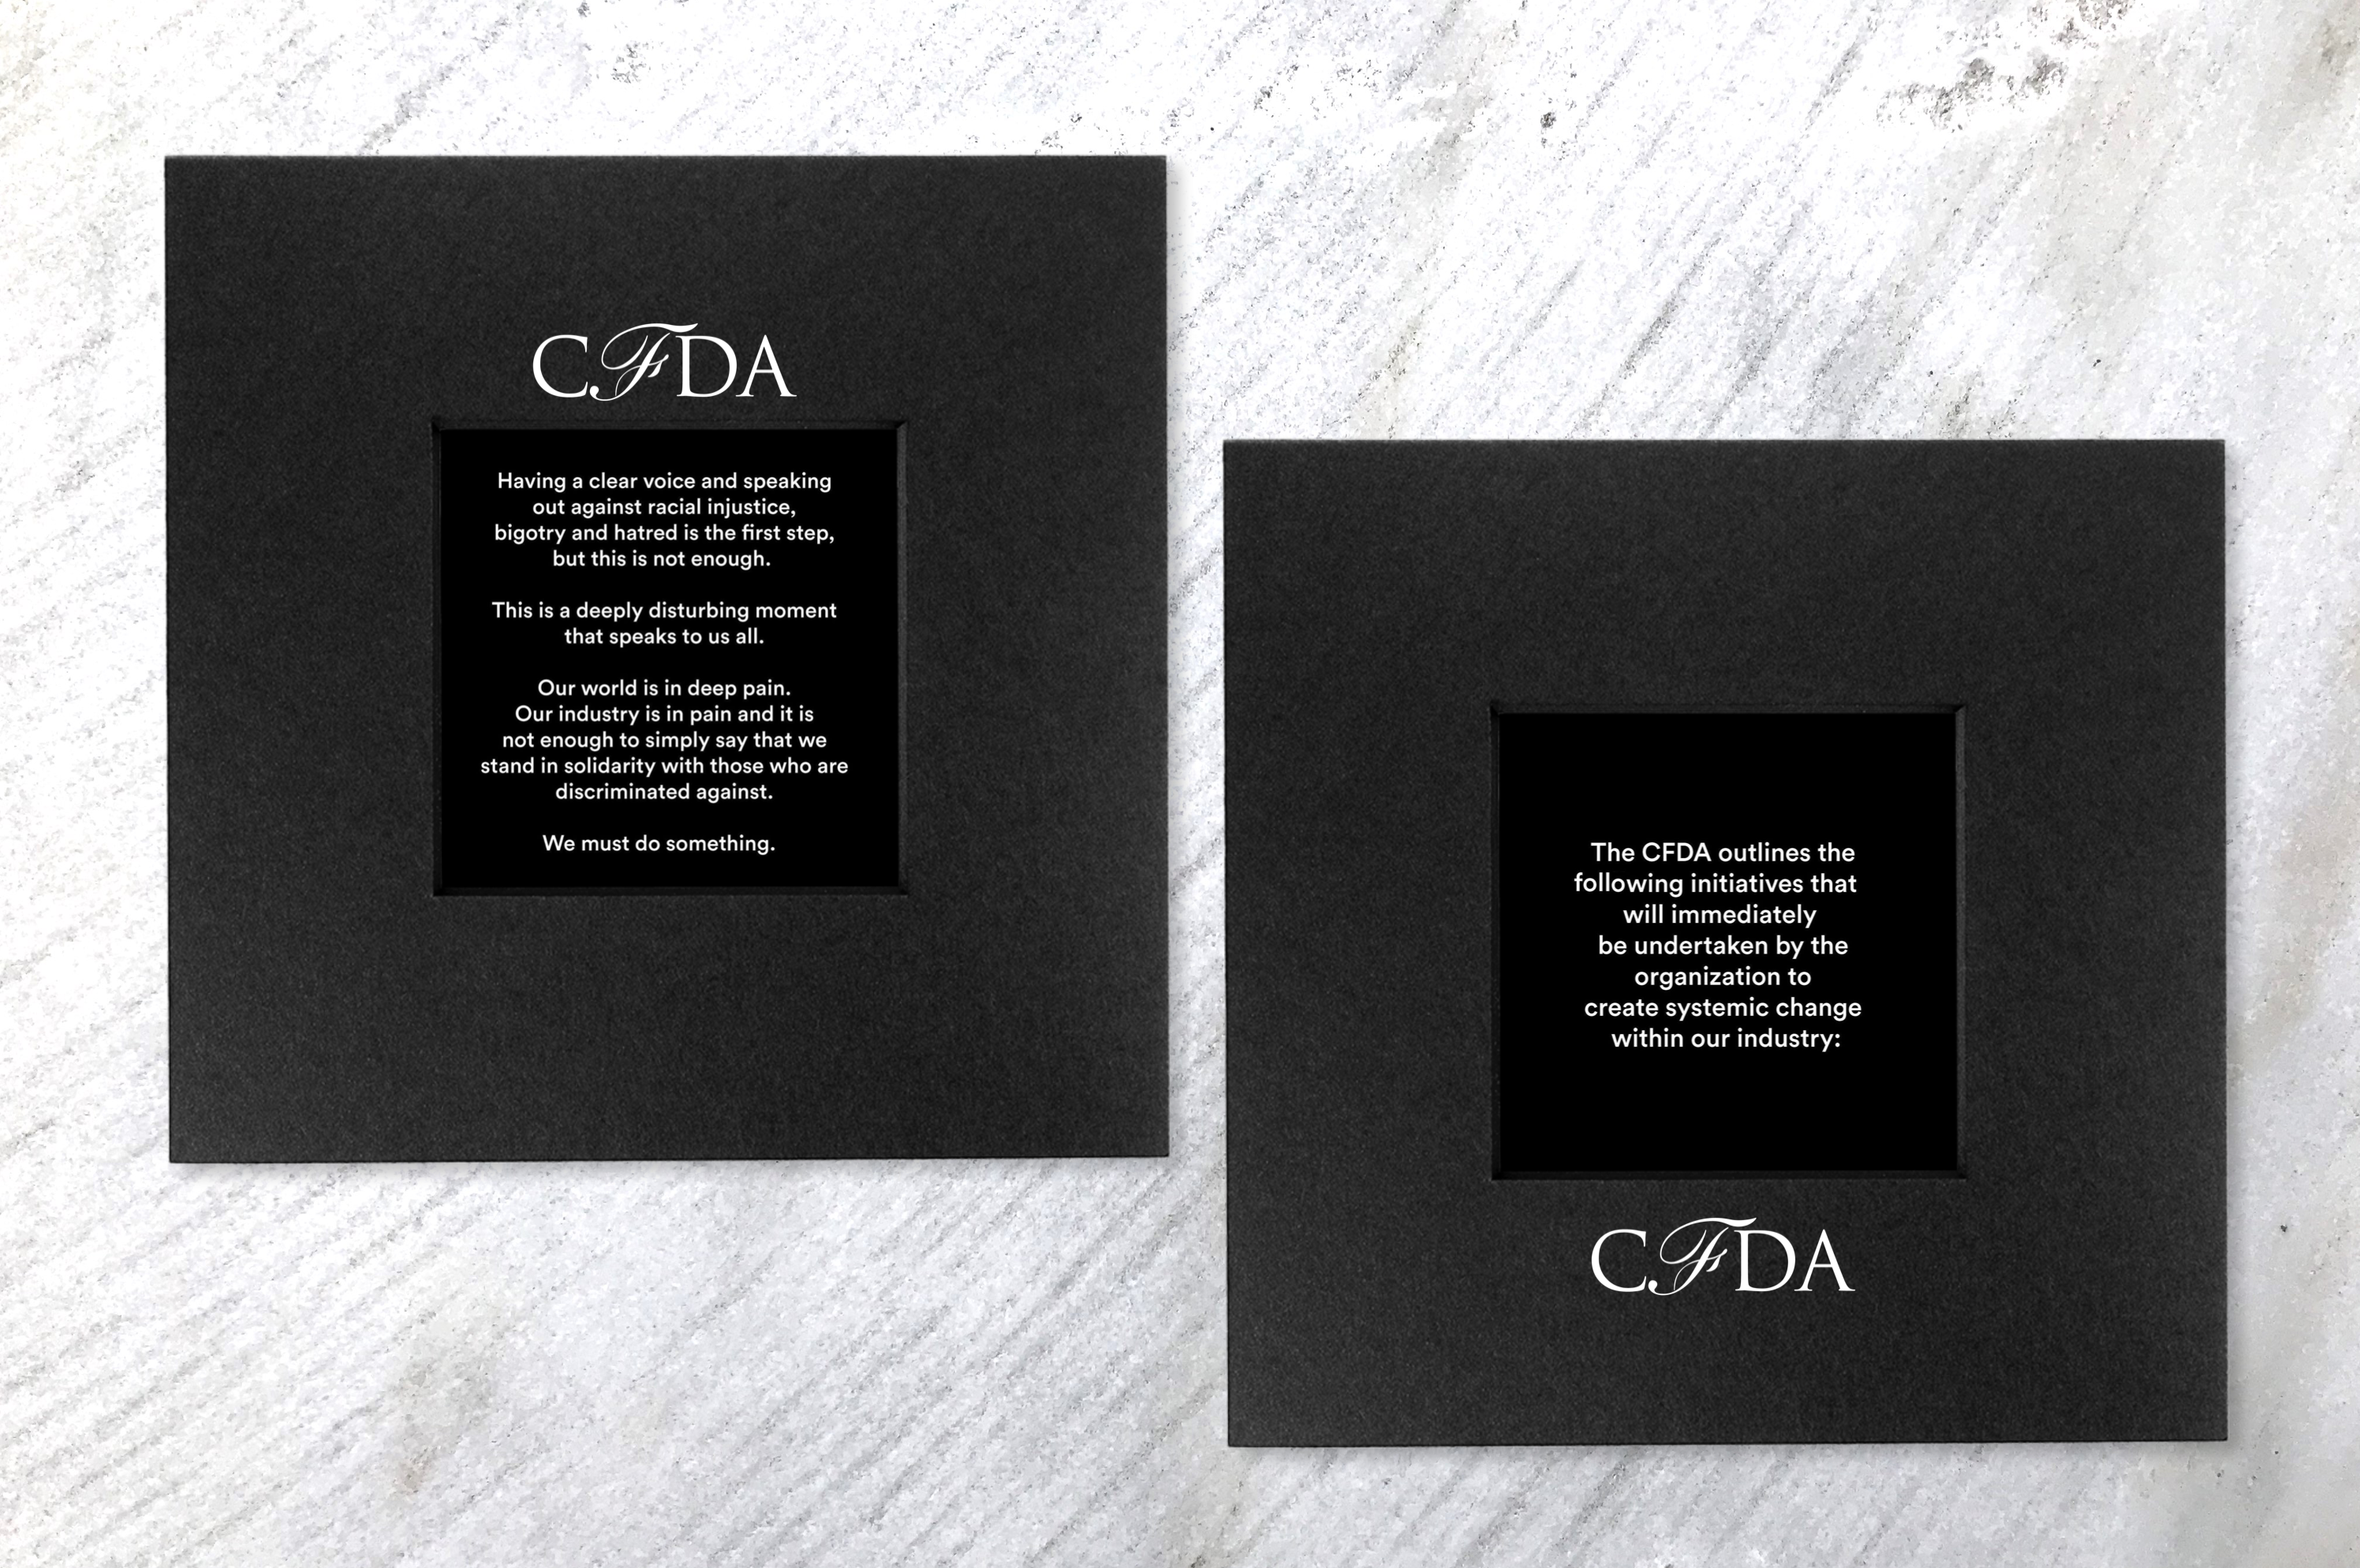 CFDA Takes Action to Combat Racism Across Industry